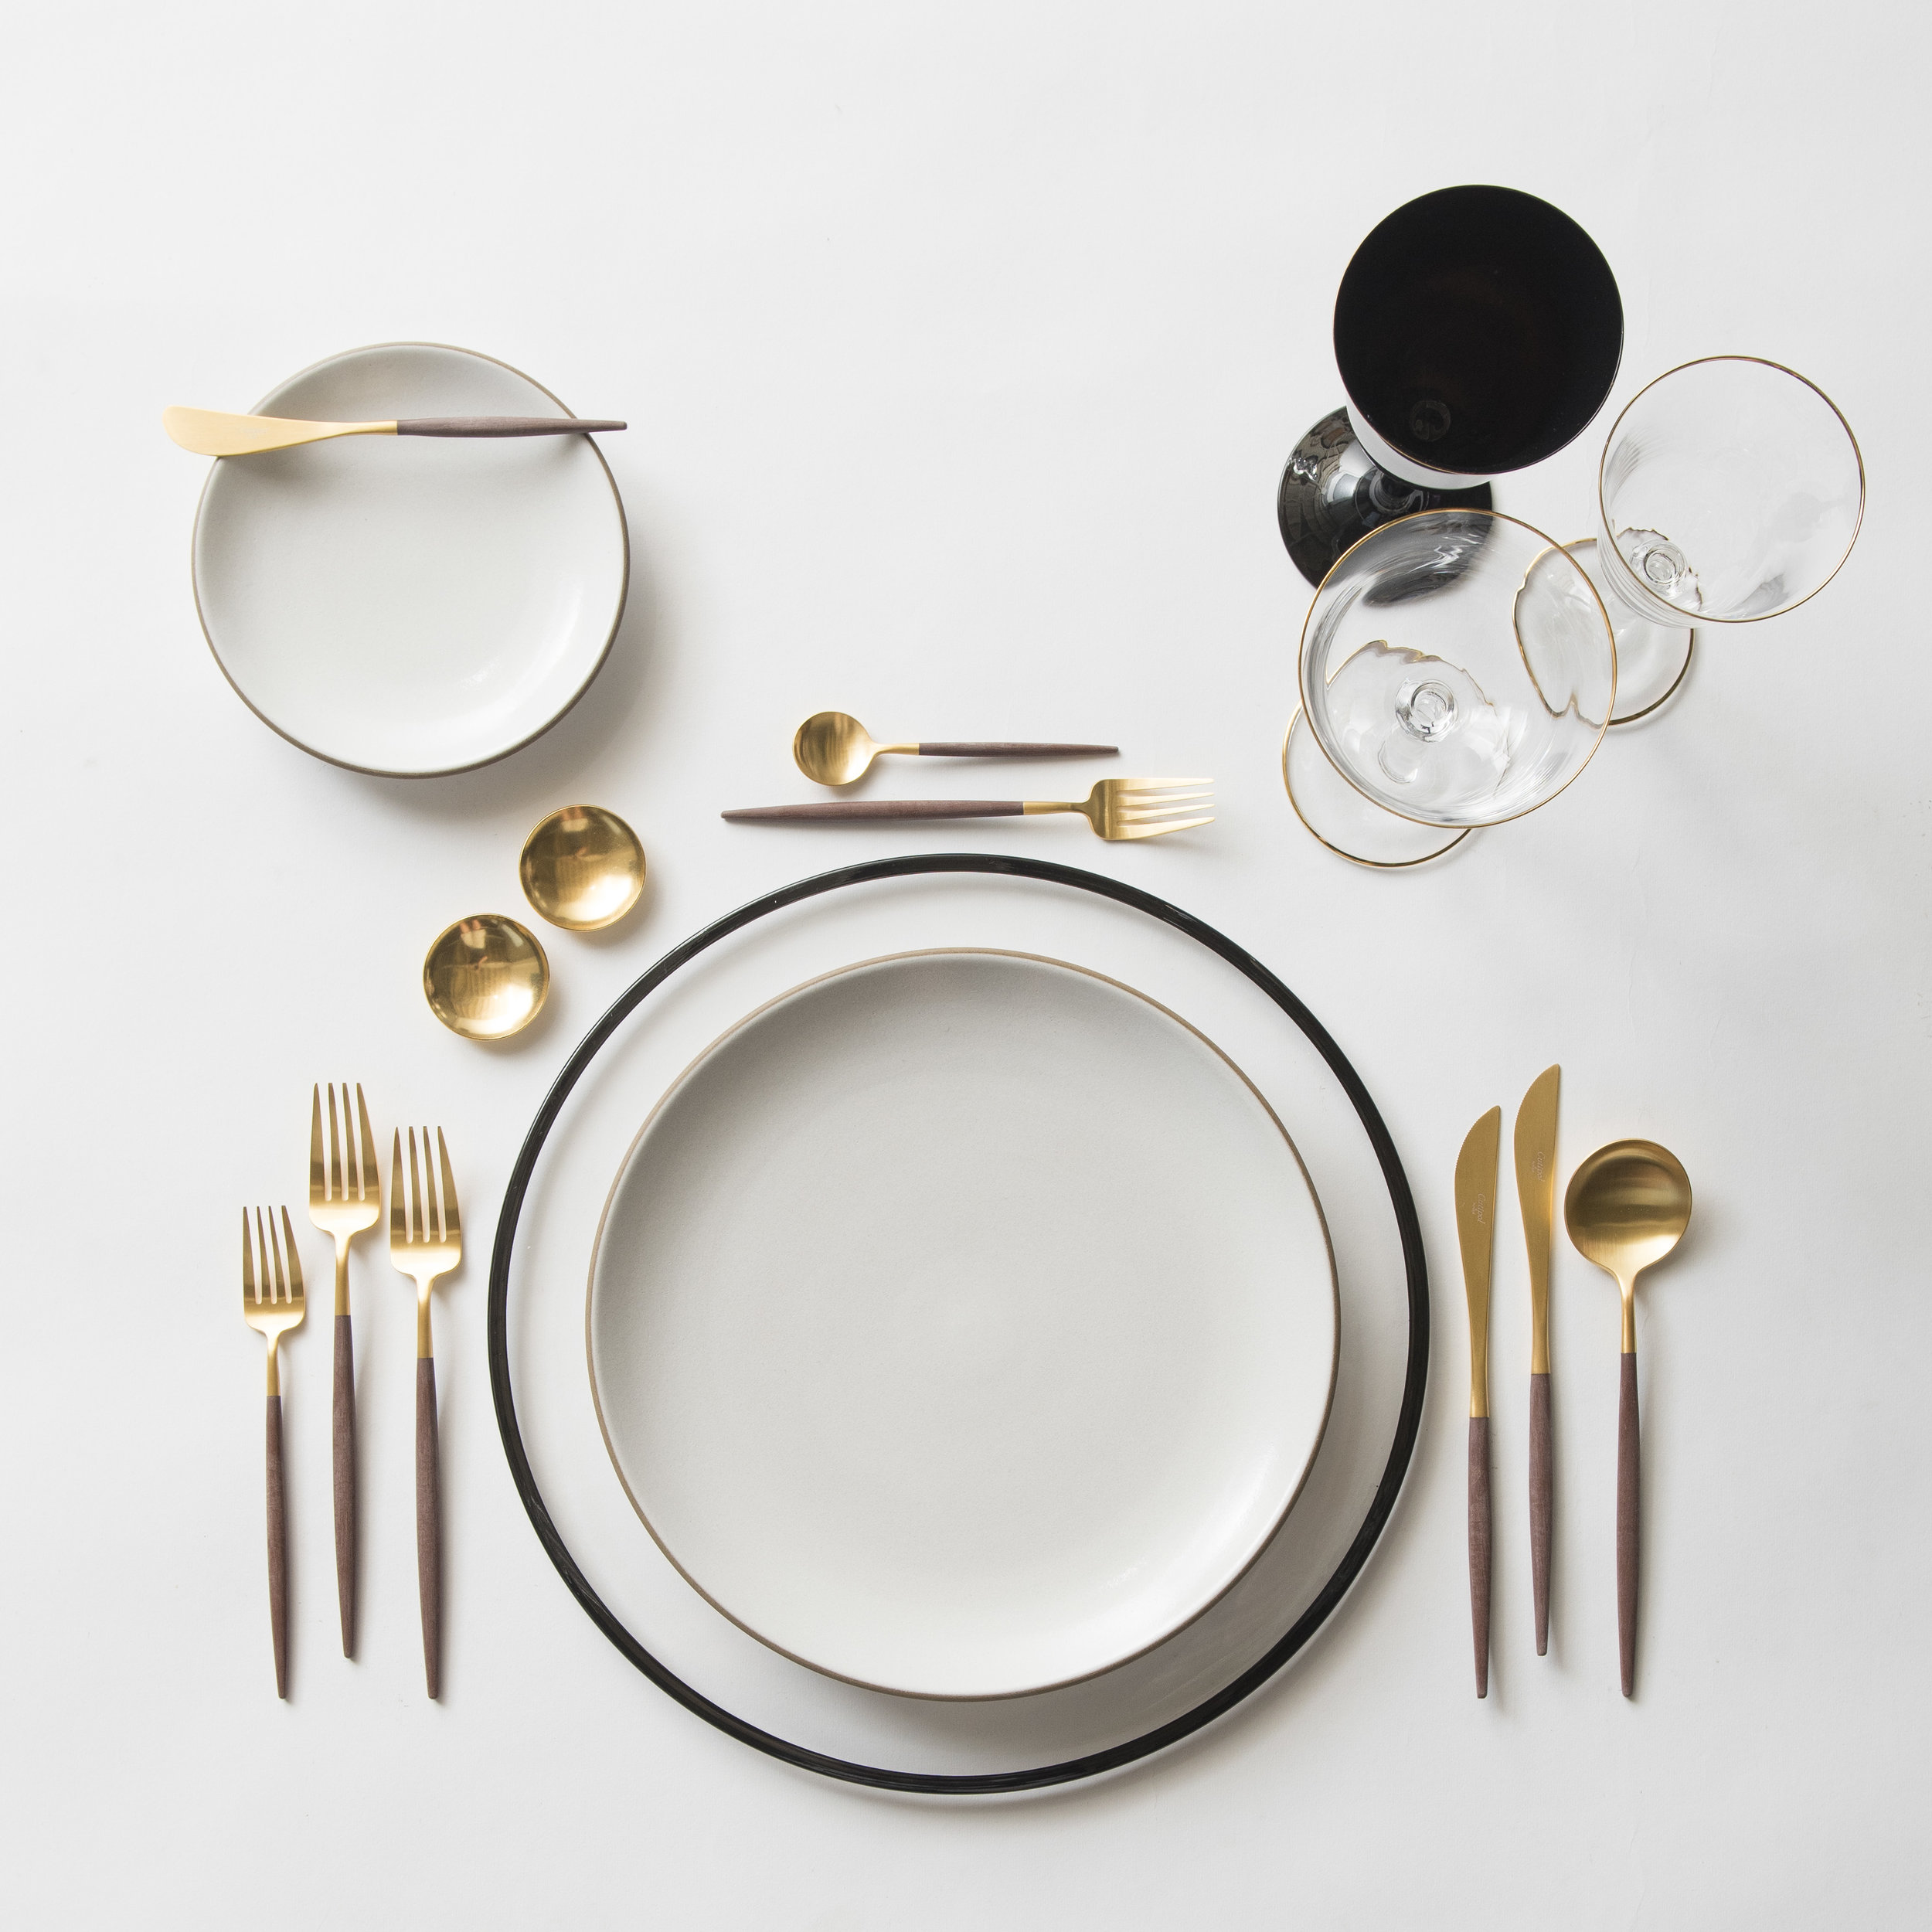 RENT: Halo Glass Chargers in Black + Heath Ceramics in Opaque White + Goa Flatware in Brushed 24k Gold/Wood + Chloe 24k Gold Rimmed Stemware + Chloe 24k Gold Rimmed Goblet in Black + 14k Gold Salt Cellars   SHOP: Halo Glass Chargers in Black + Goa Flatware in Brushed 24k Gold/Wood + Chloe 24k Gold Rimmed Stemware + 14k Gold Salt Cellars